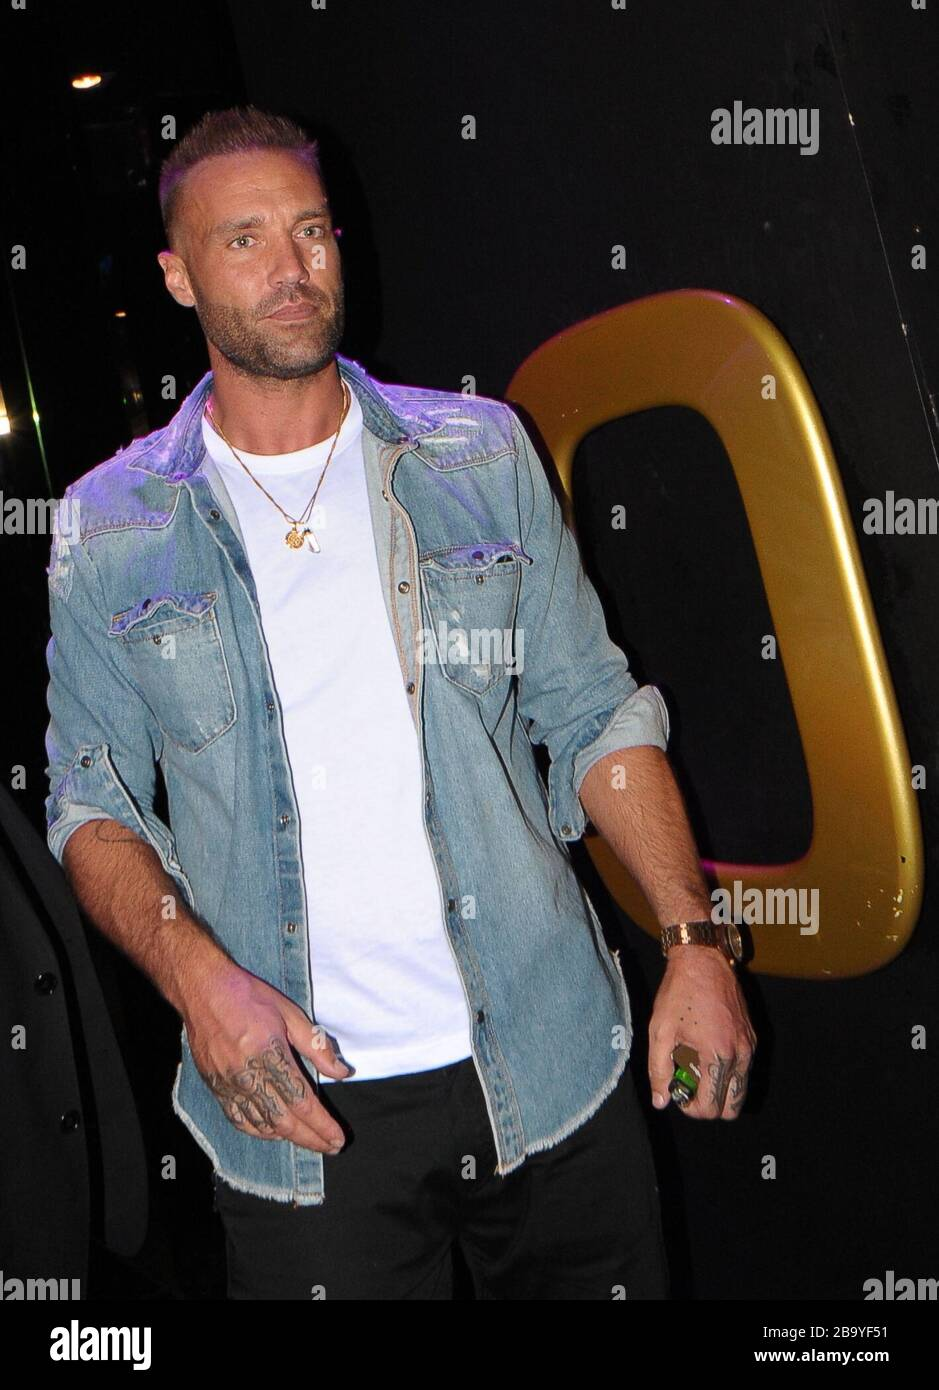 2021 victoria still dating calum best is from dating celebs go Which Celebs